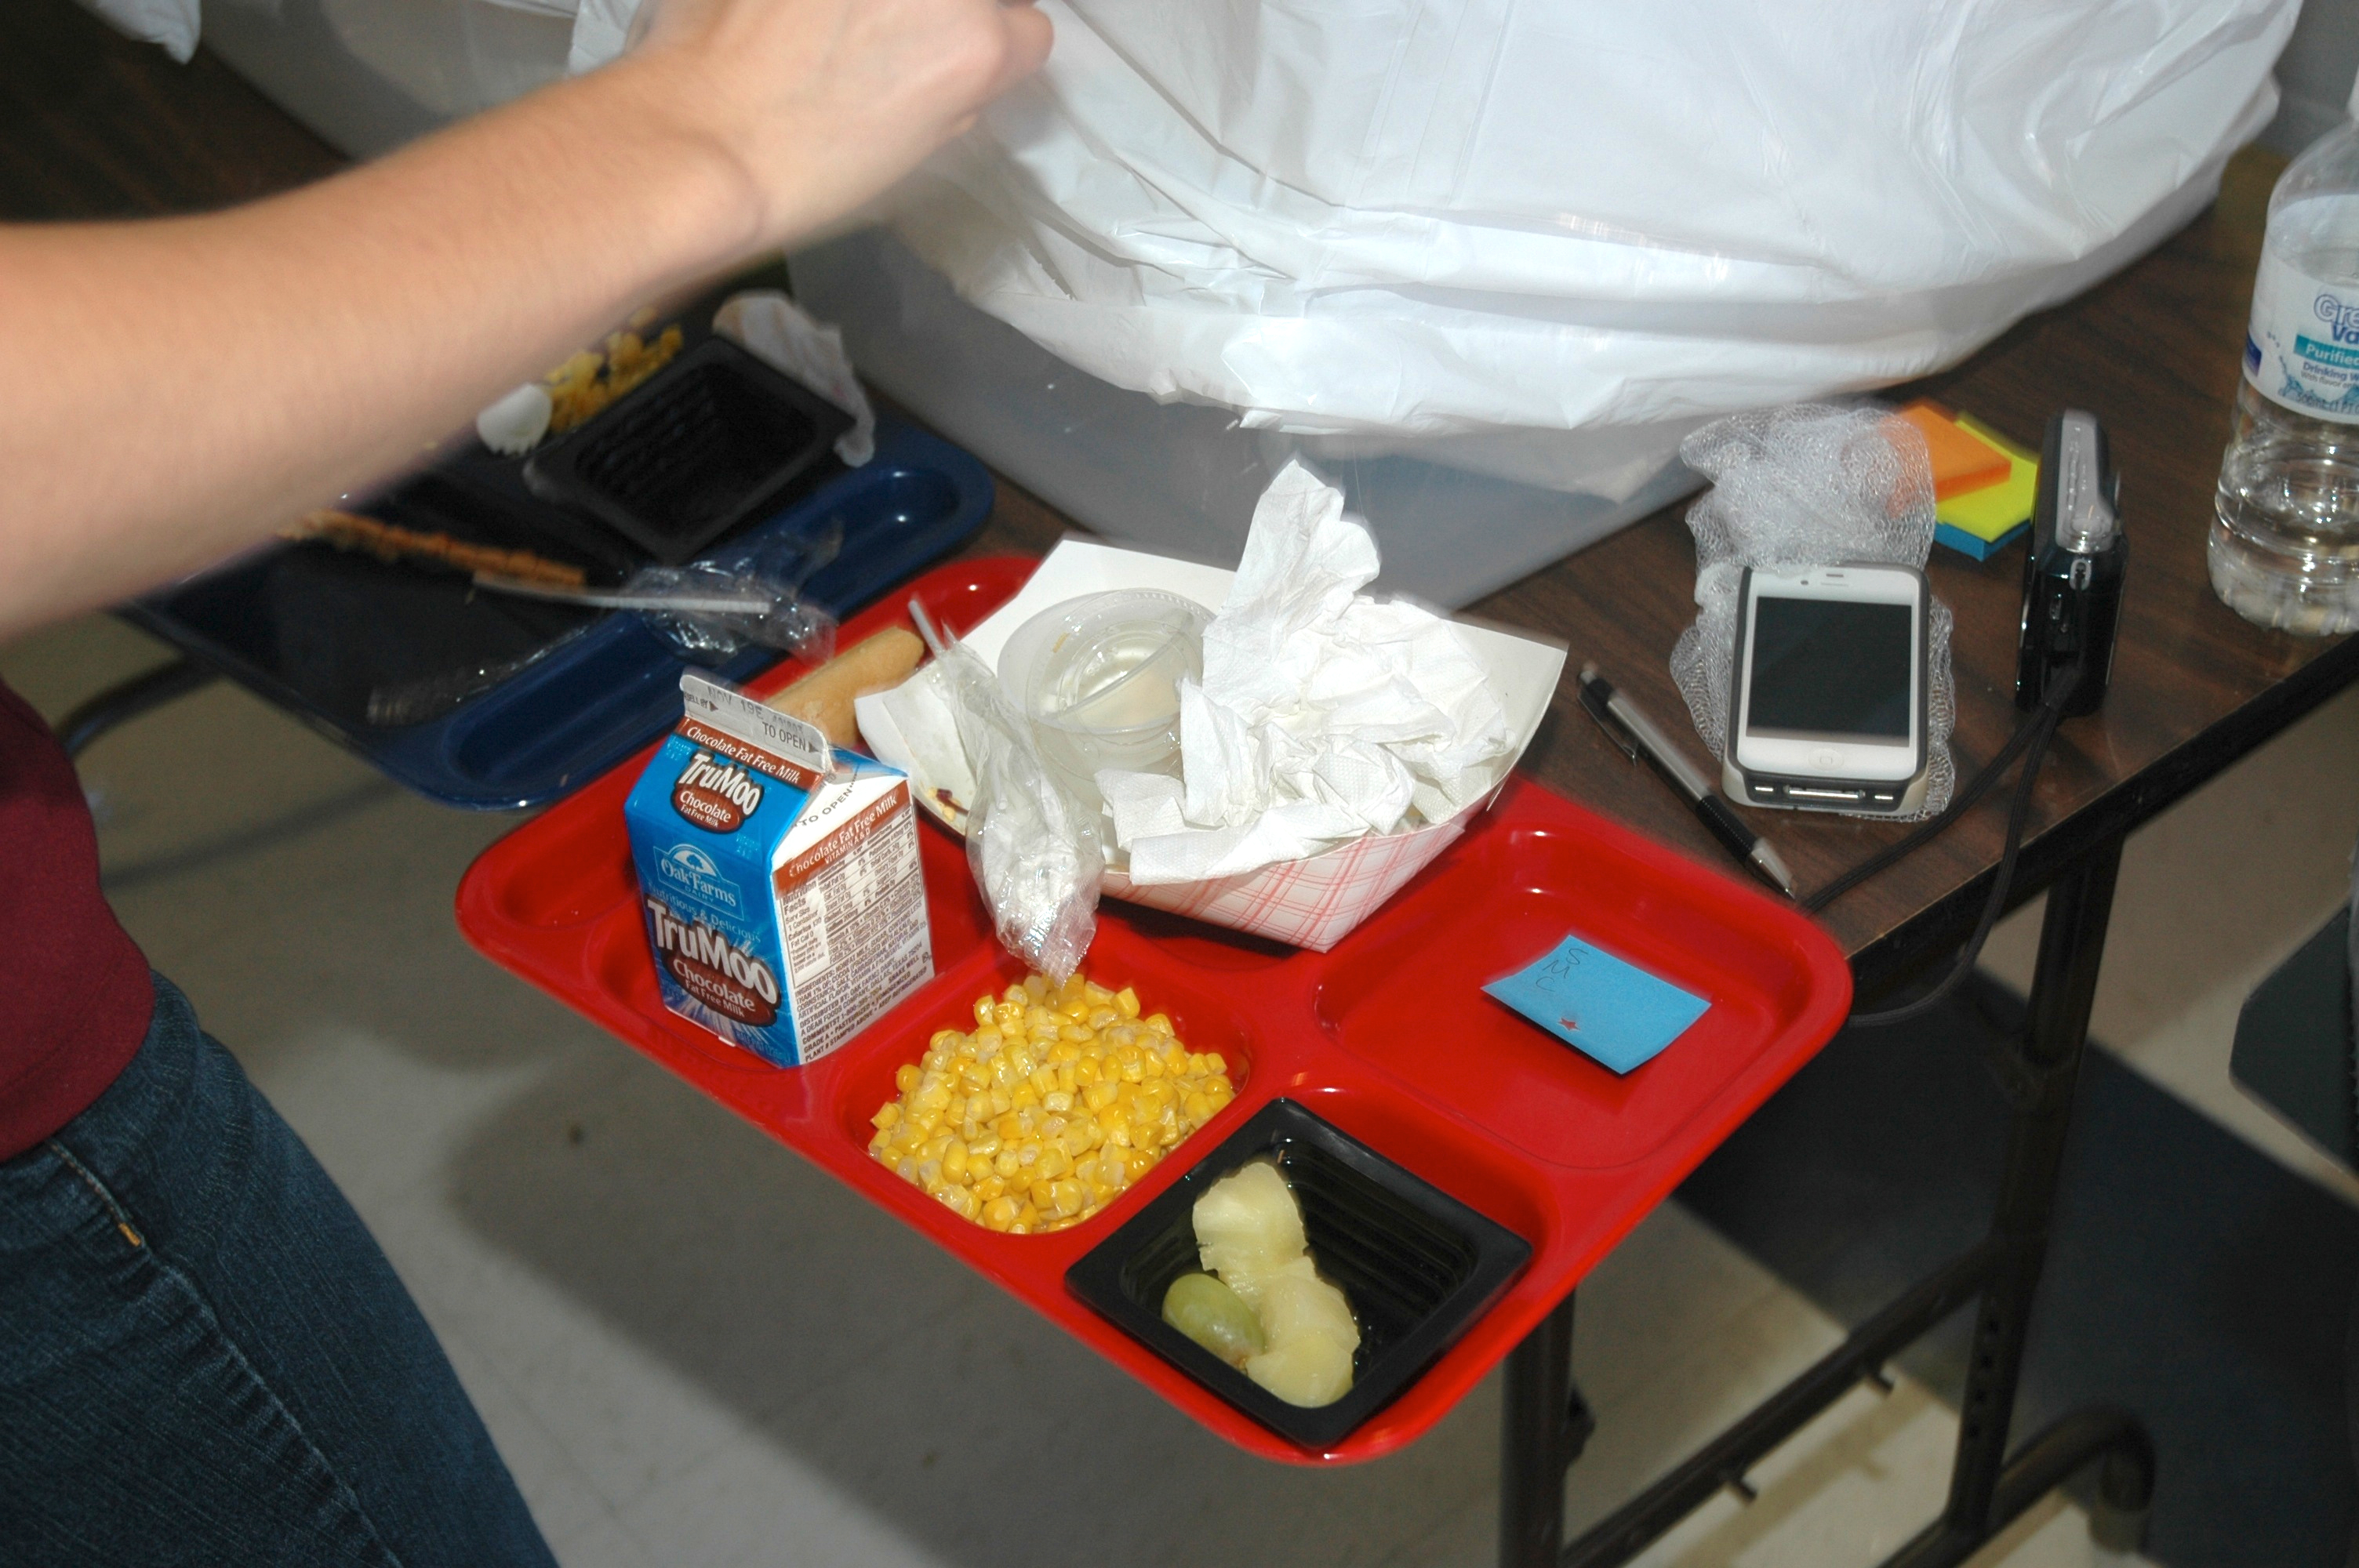 School Lunch Waste among Middle School Students ...